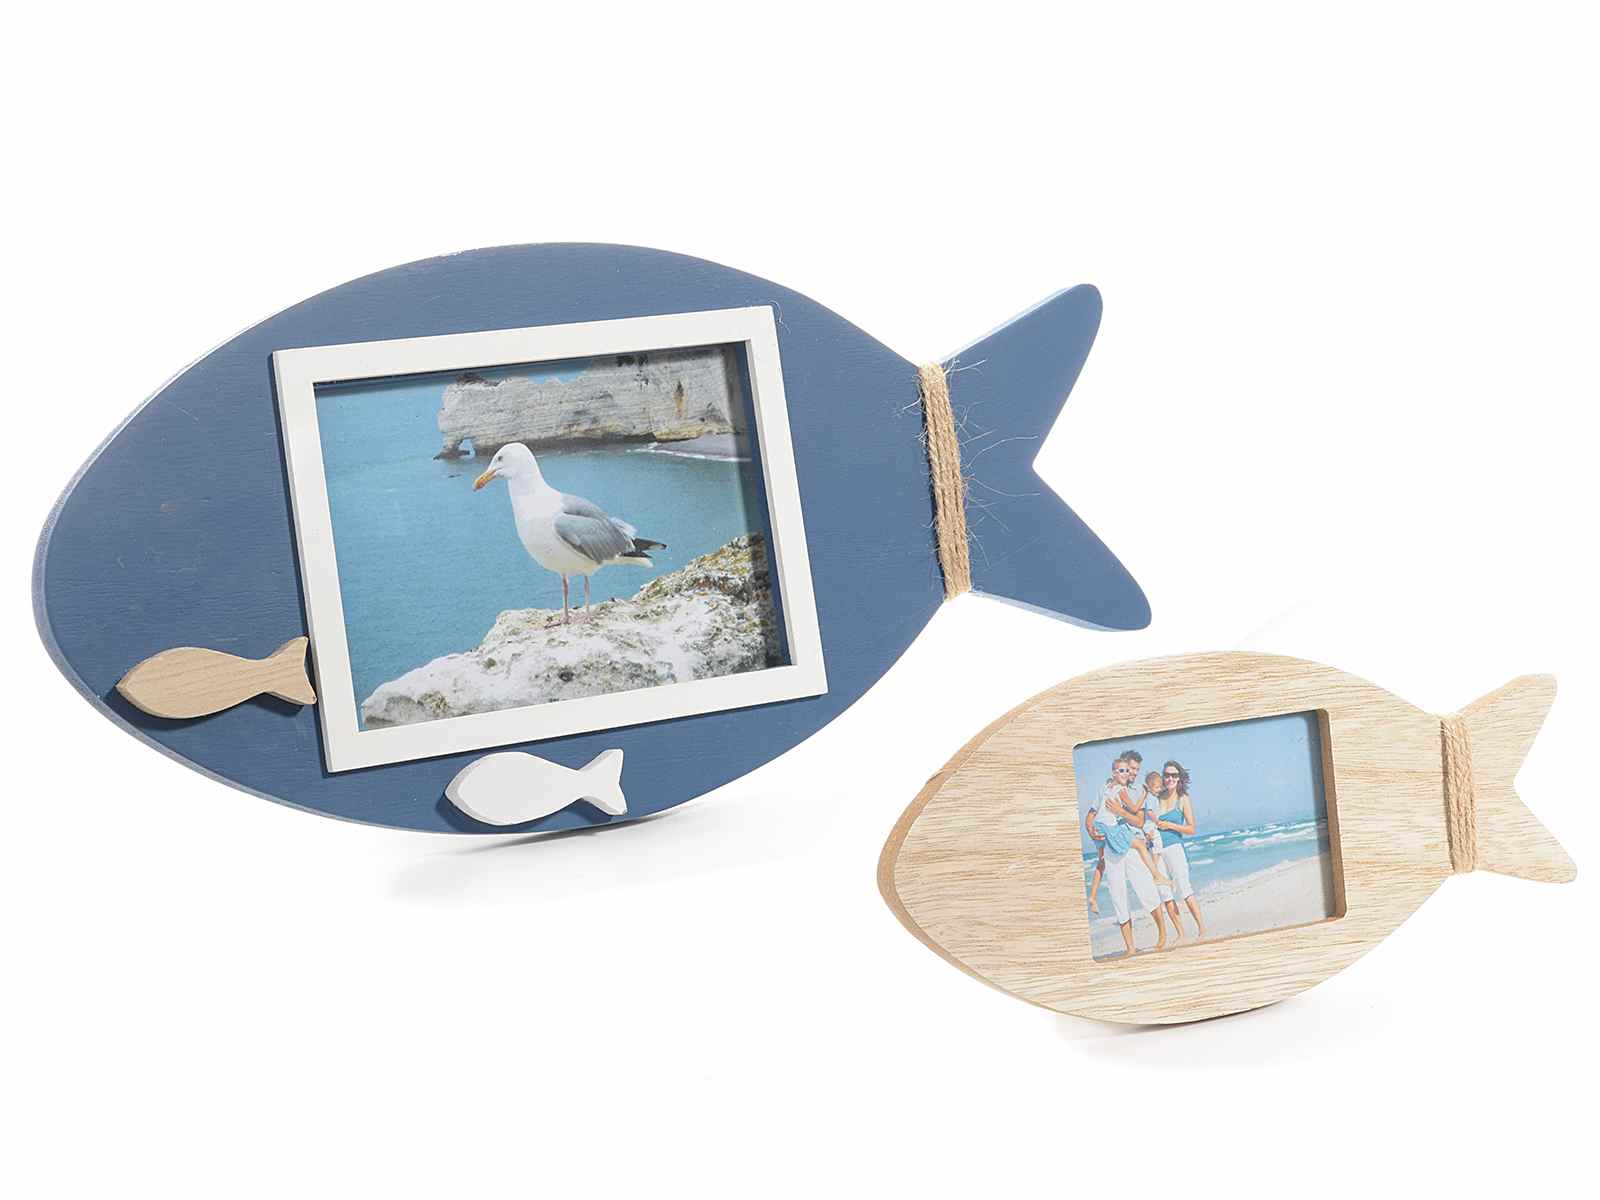 Set of 2 wooden fish shaped photo frames (51.33.03) - Art From Italy